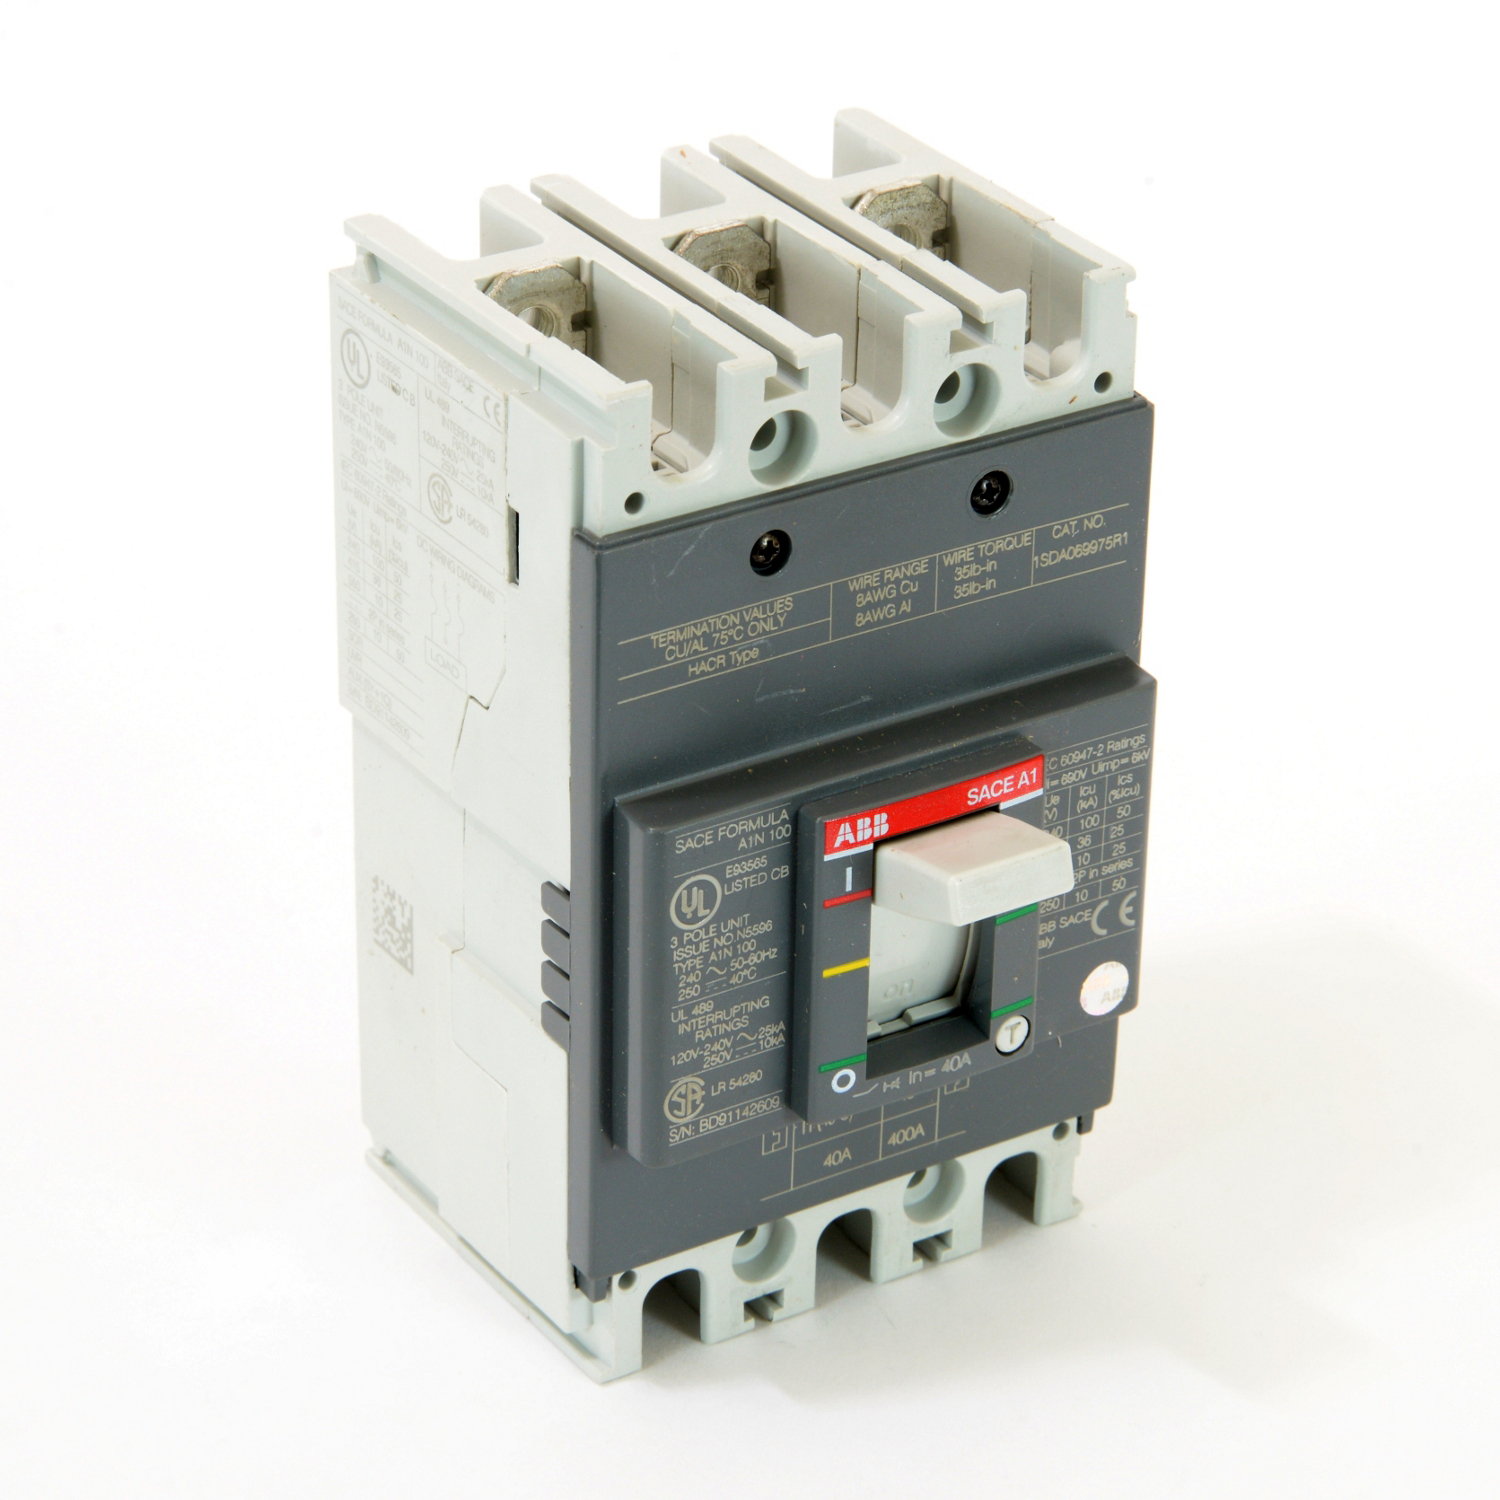 ABB A1N040TW Molded Case Circuit Breakrs